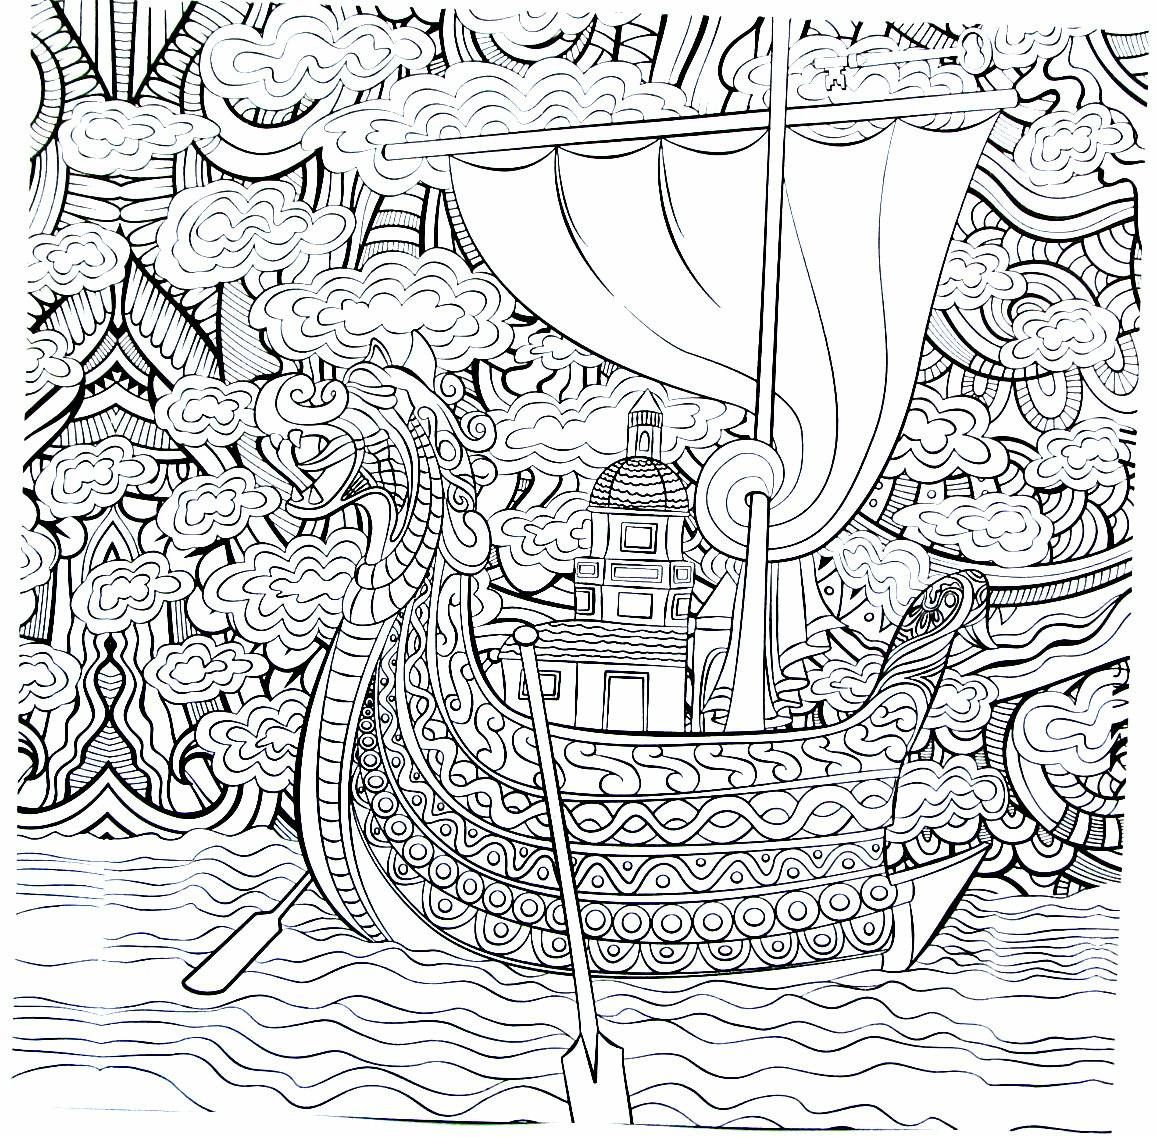 Viking Ship Detailed Coloring Book Page For Adults Coloring Book Pages Coloring Books Coloring Pages